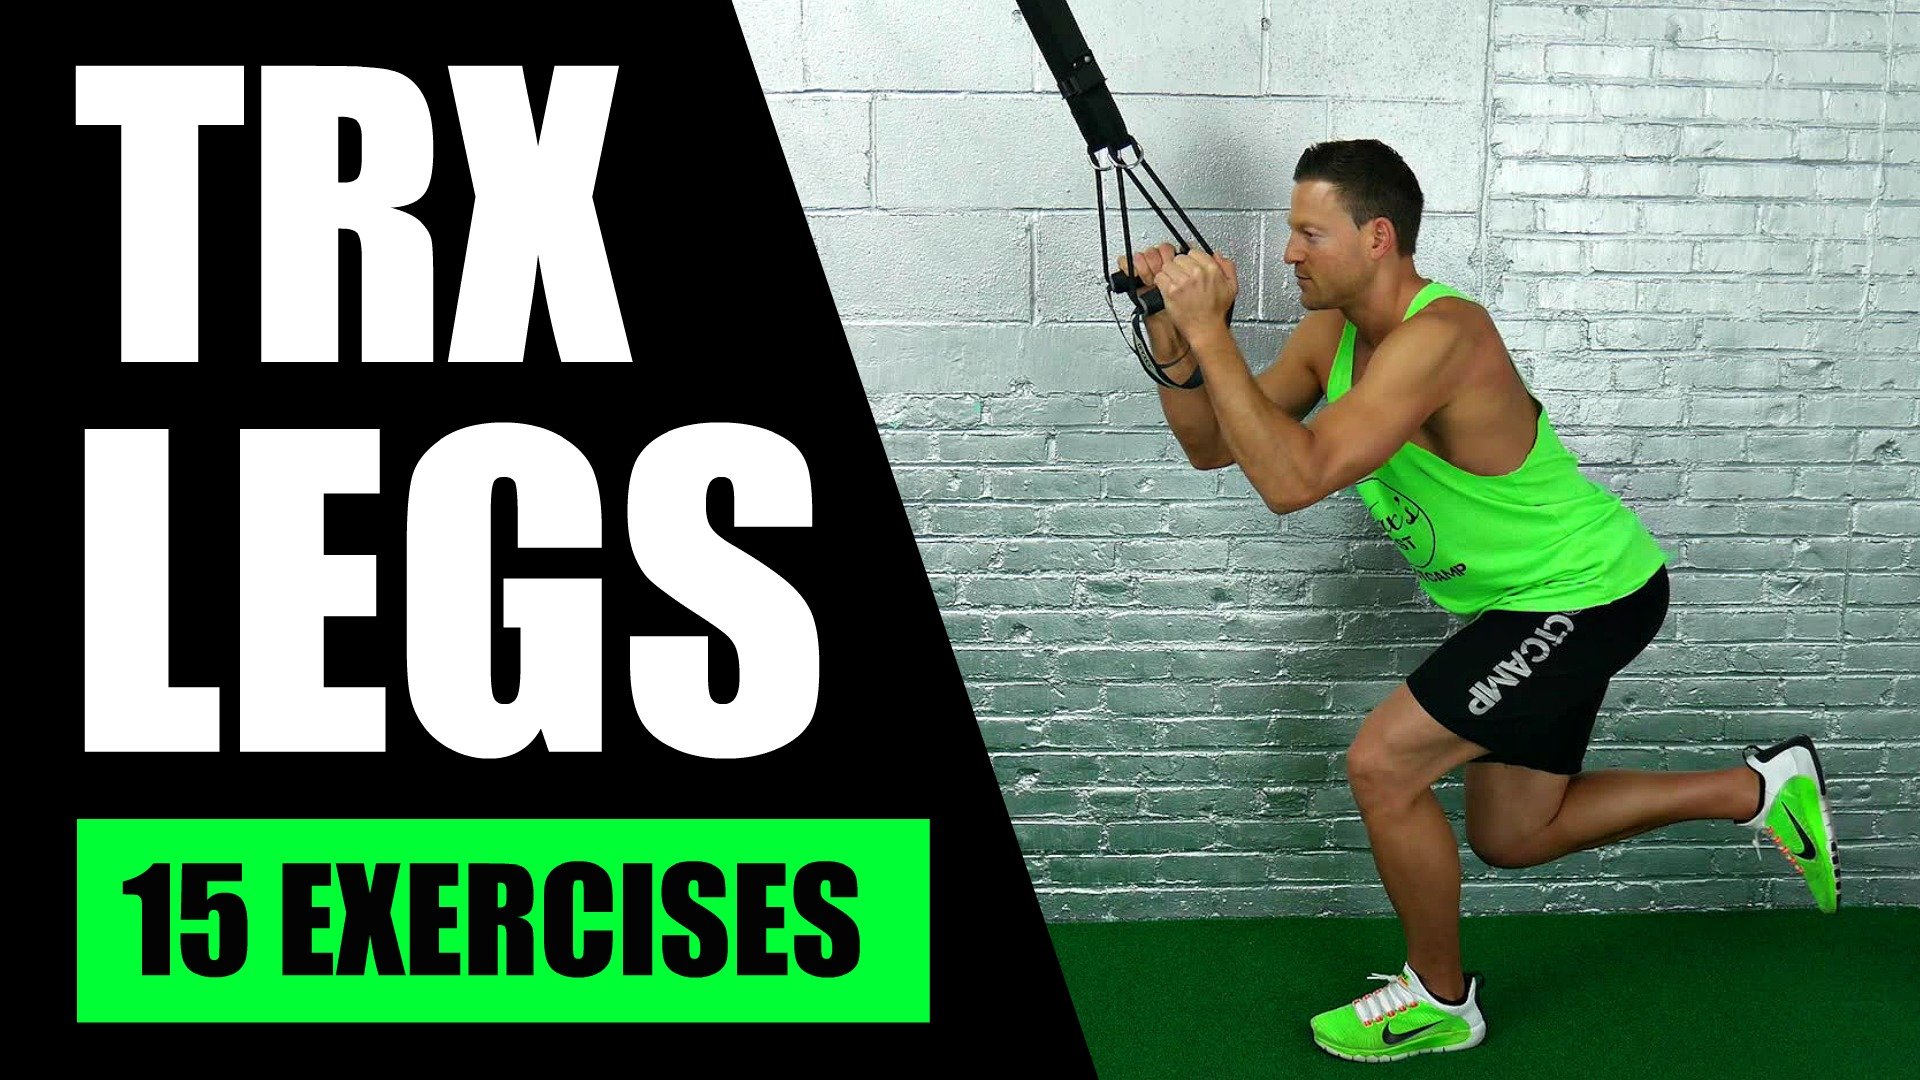 TRX exercises for legs